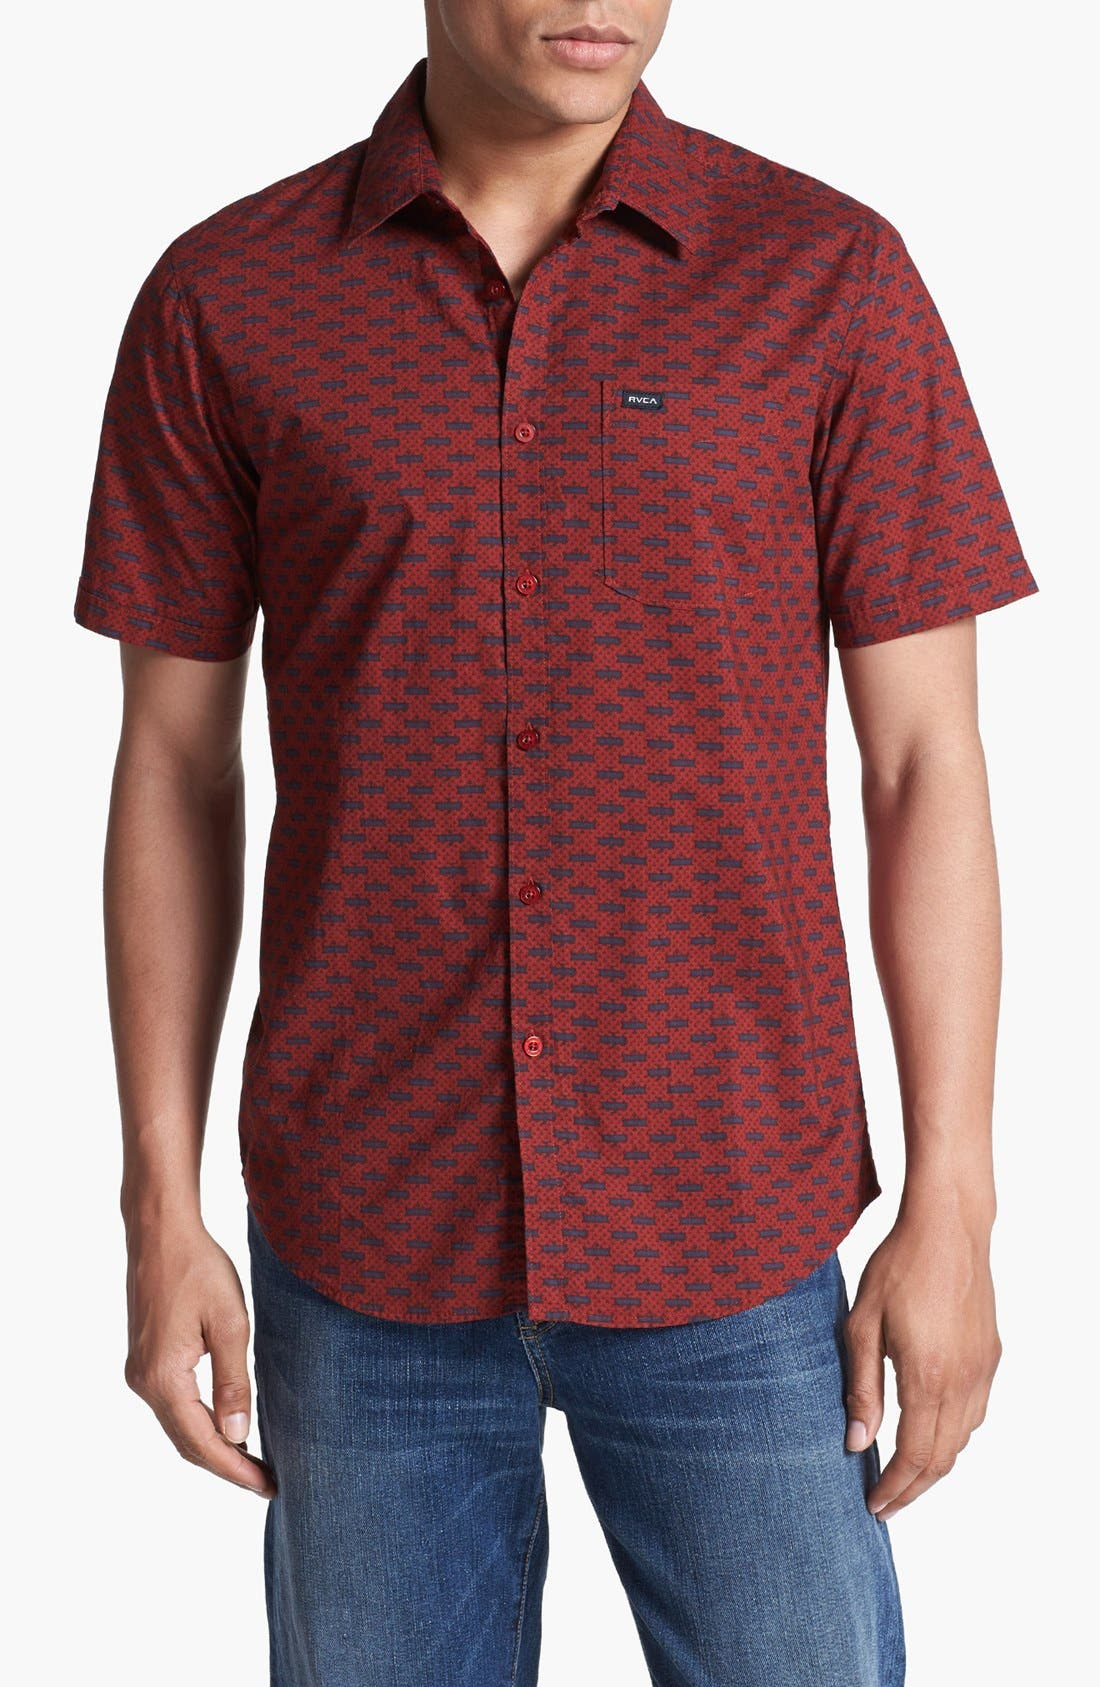 Alternate Image 1 Selected - RVCA 'Chronicles' Print Woven Shirt